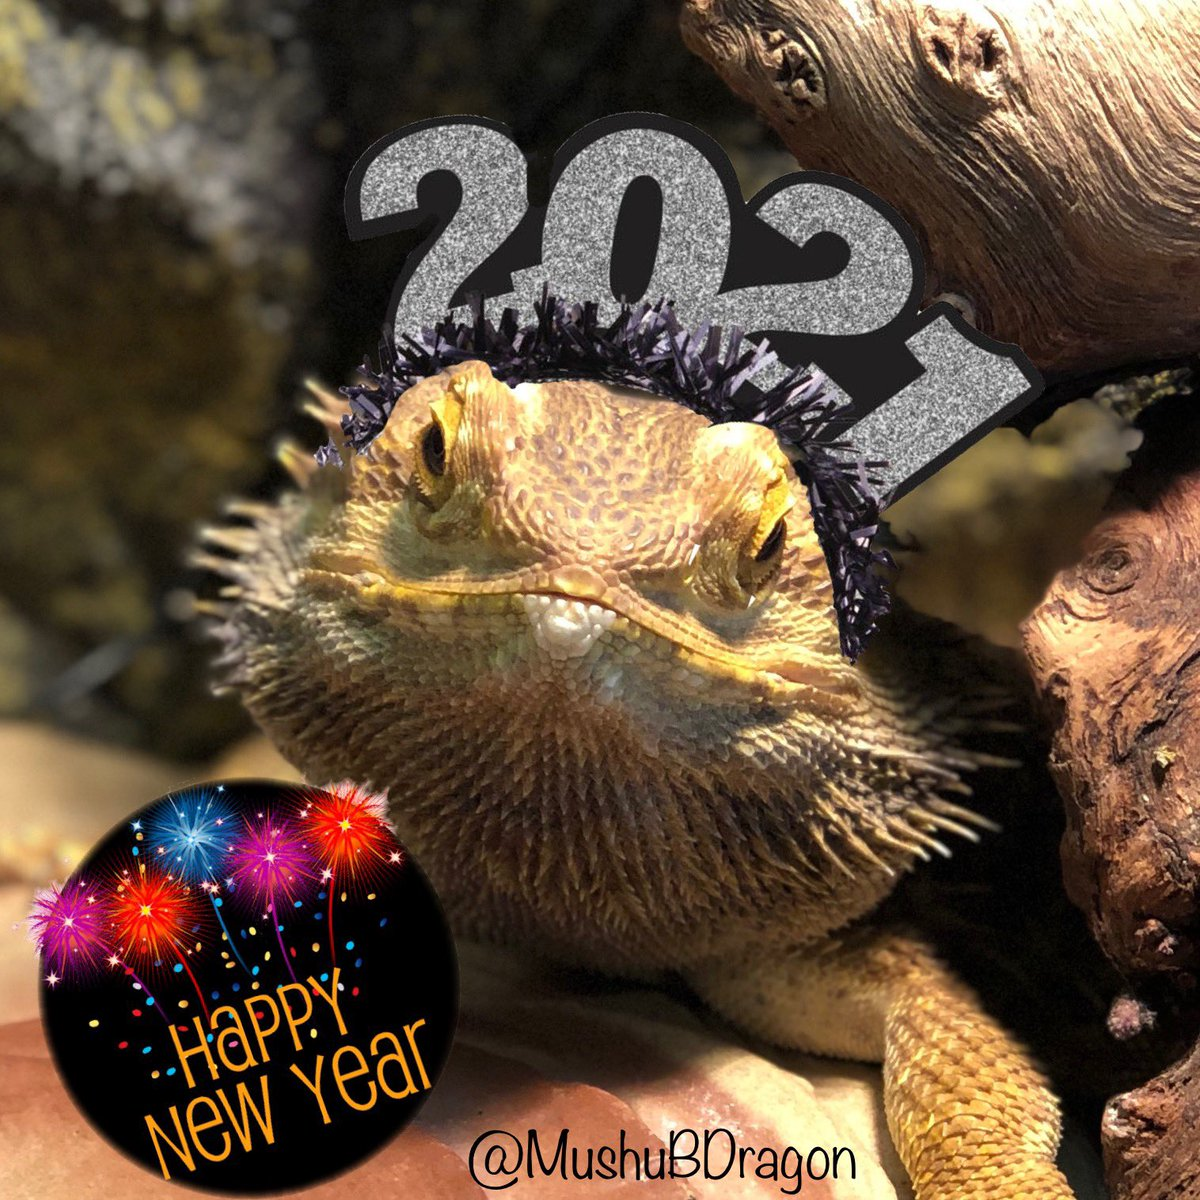 Mushu wishes all of you the best ever #2021 ! Putting 2020 behind us and starting this #newyear with hope and gratitude! 🎉♥️🌟🥳🆕🧸 🐉 #beardeddragon #beardeddragonsofinstagram #lizard #happyhanukkah @CambridgeHS1 @CambridgeBears @BearsMediaCtr